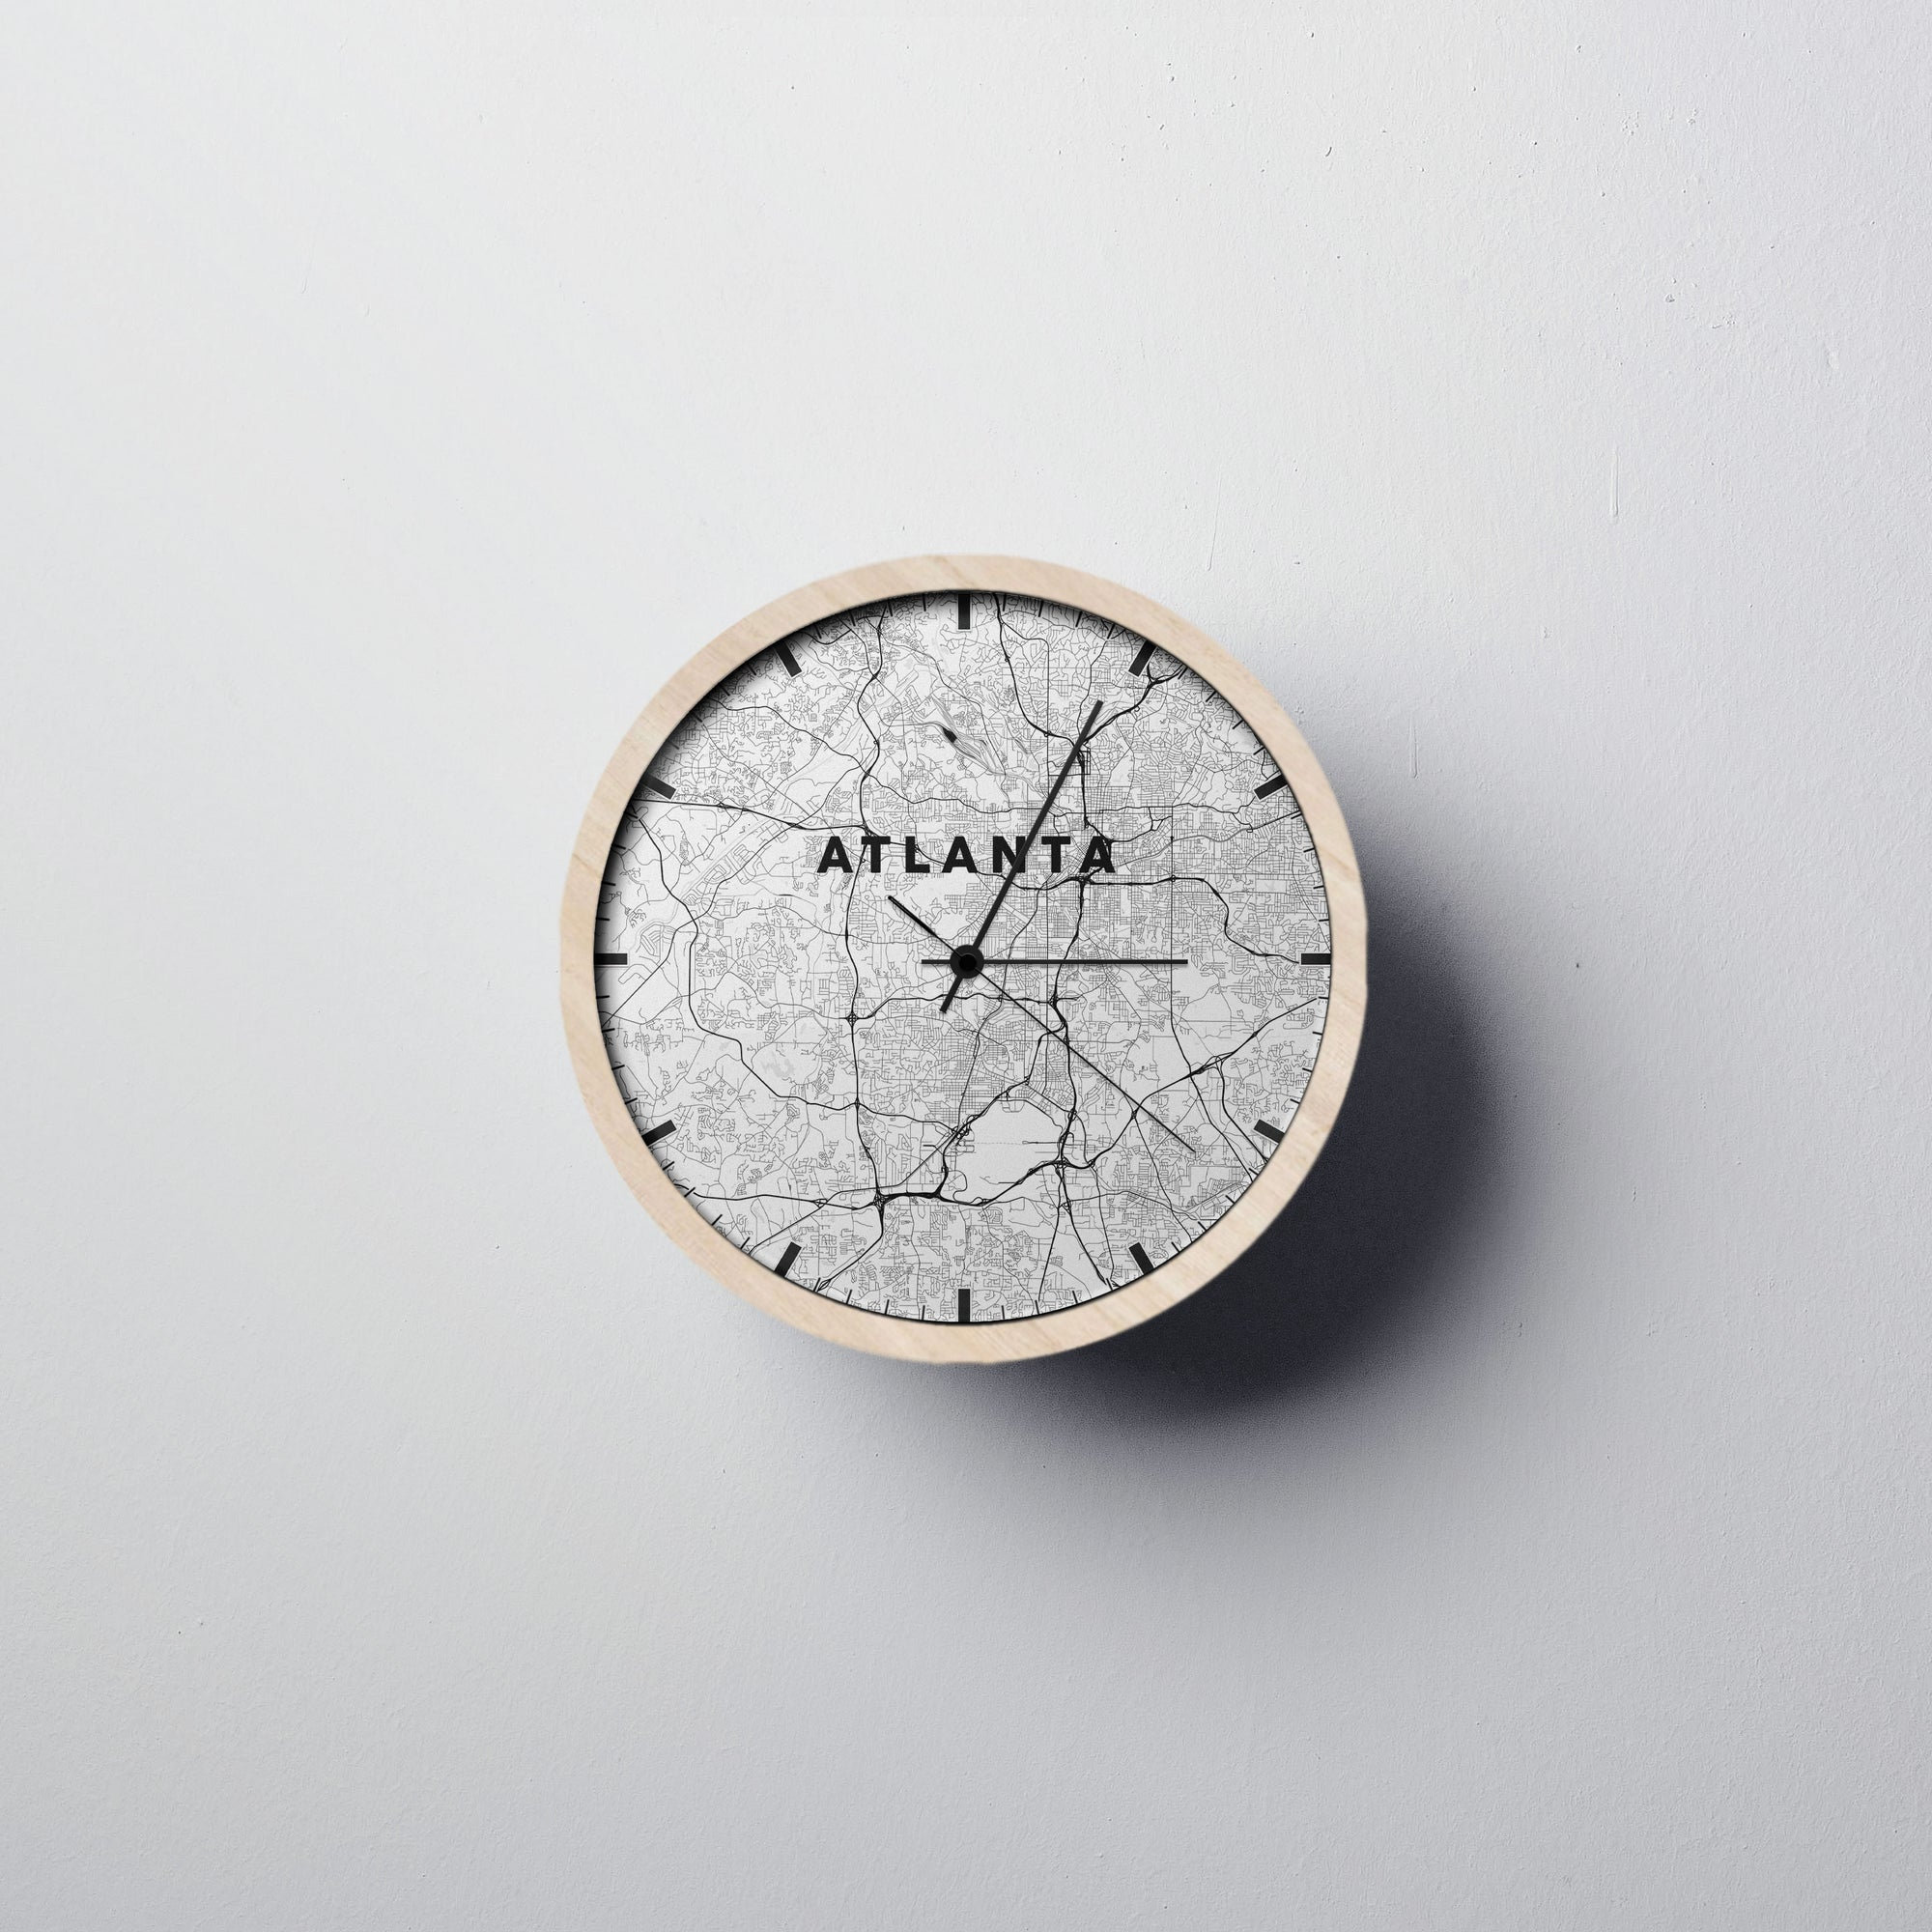 Atlanta Wall Clock - Point Two Design